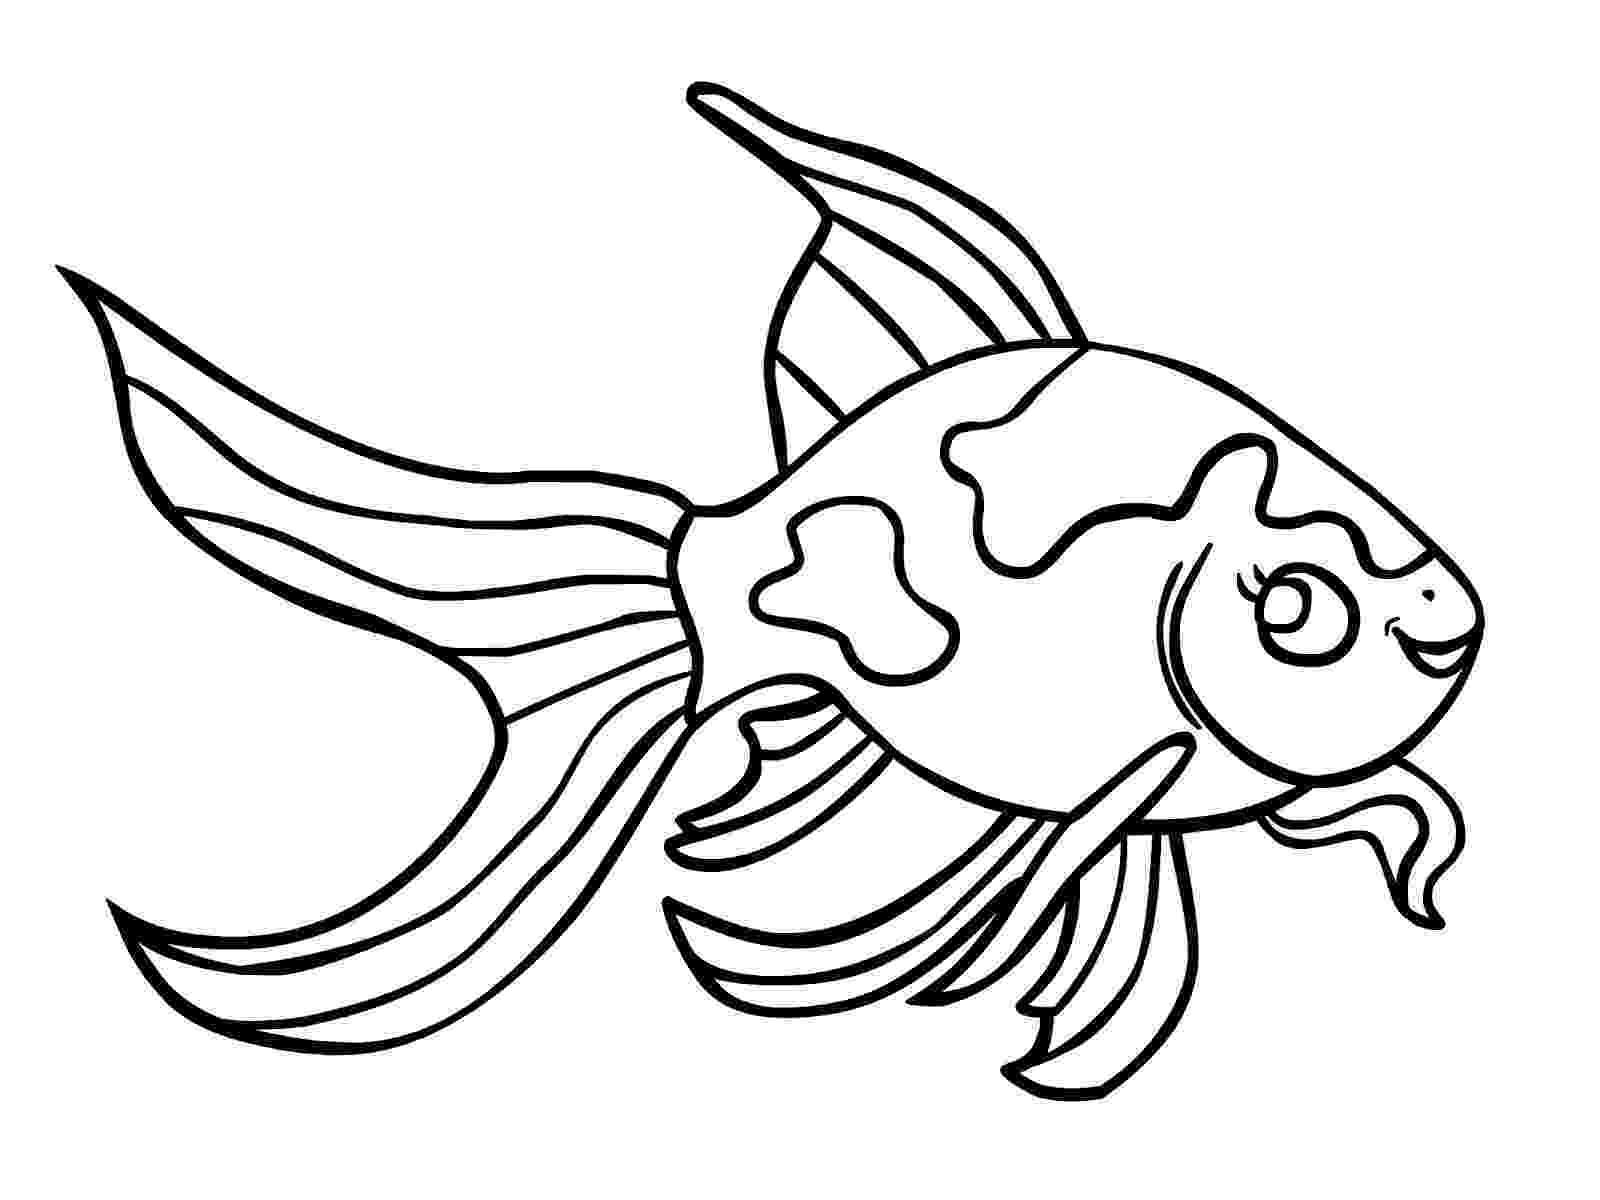 fish coloring pages to print free printable goldfish coloring pages for kids coloring print pages to fish